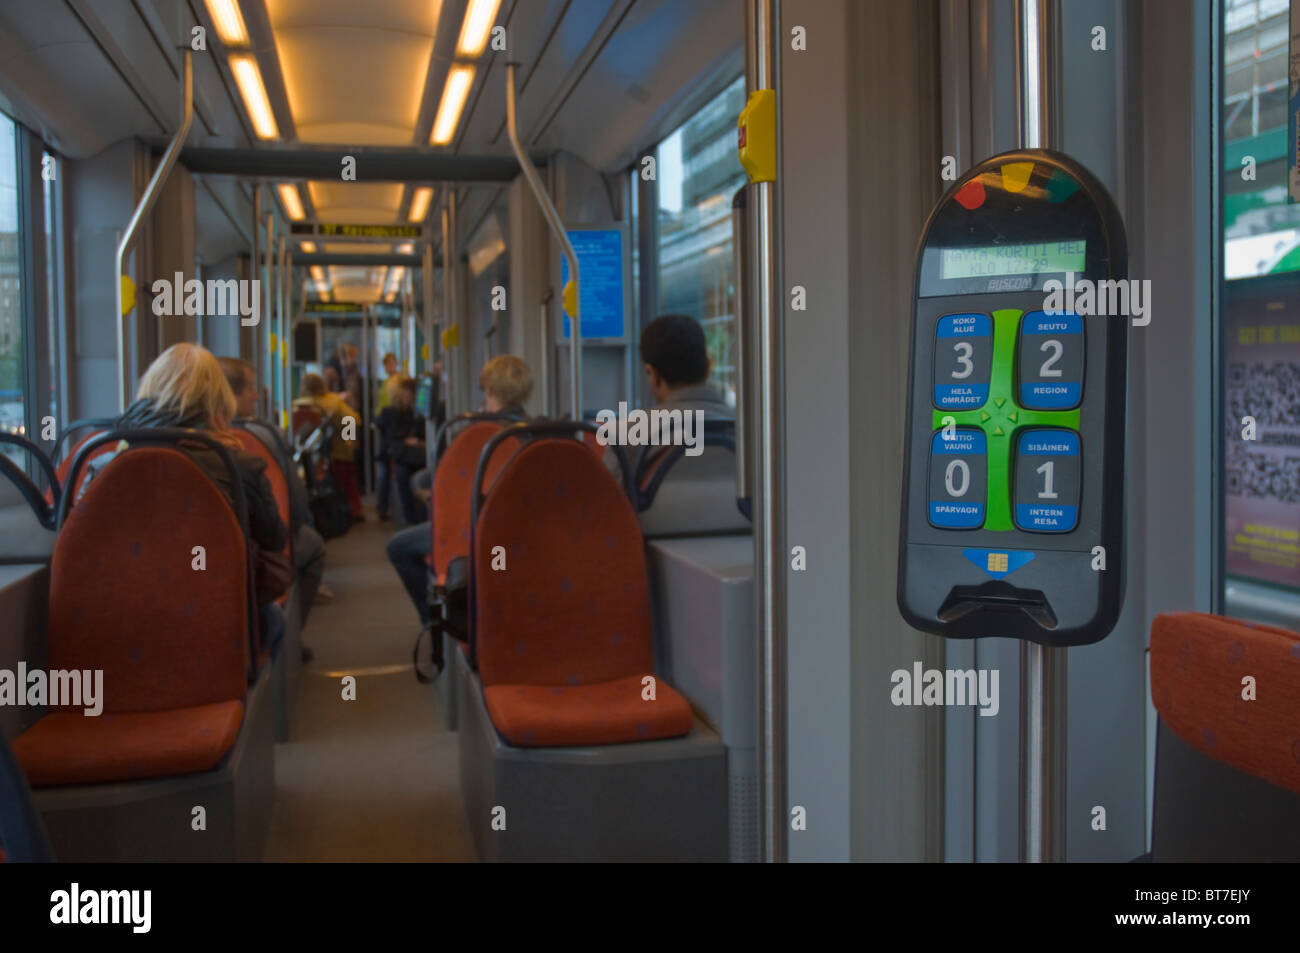 Electronic validating point and card reader on a tram in Helsinki Finland Europe - Stock Image